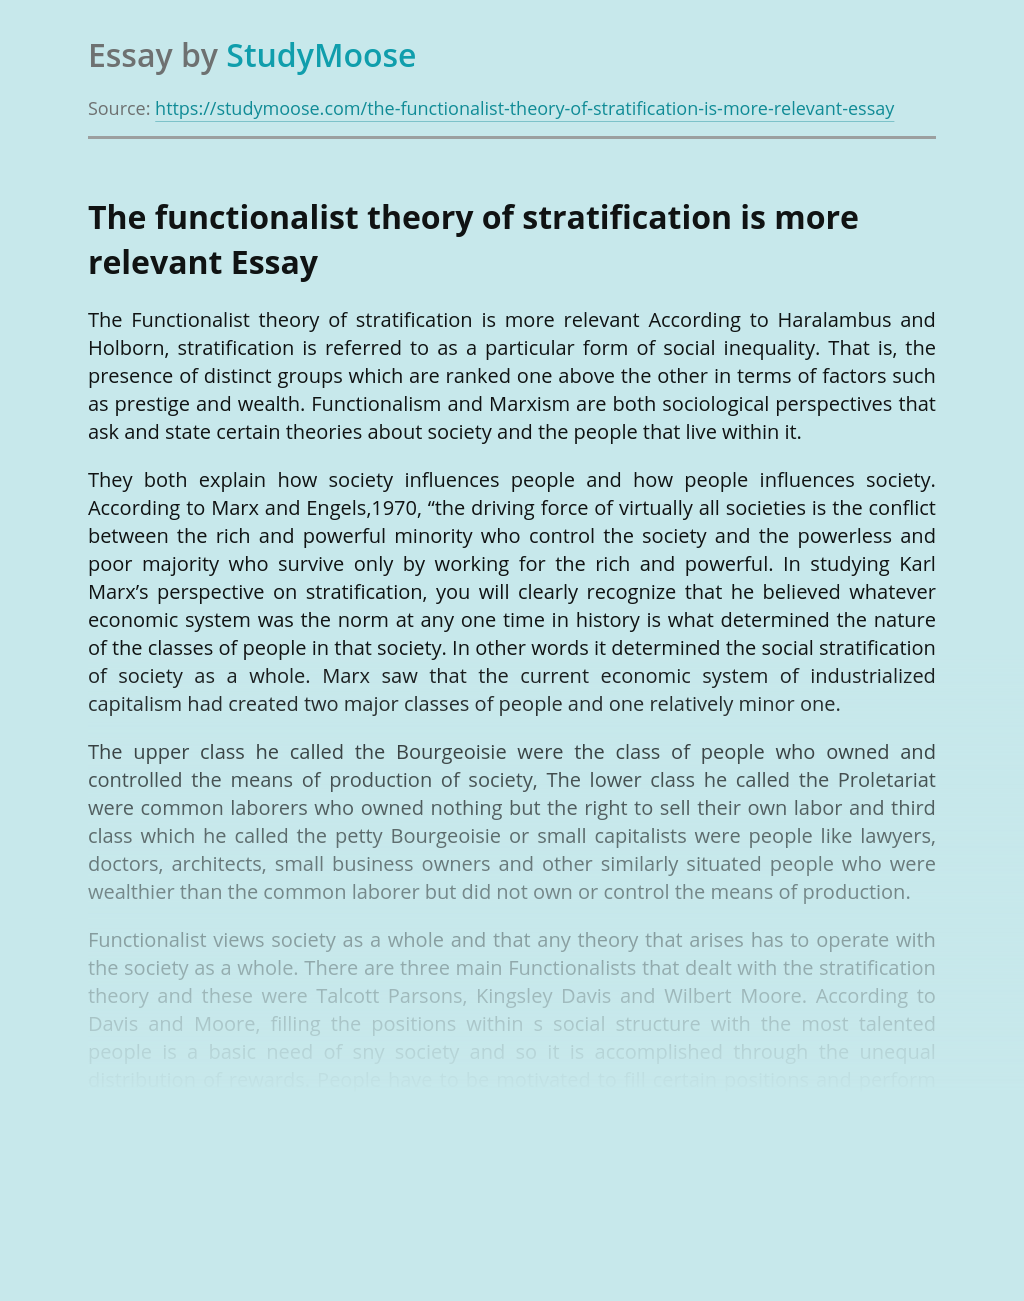 The functionalist theory of stratification is more relevant